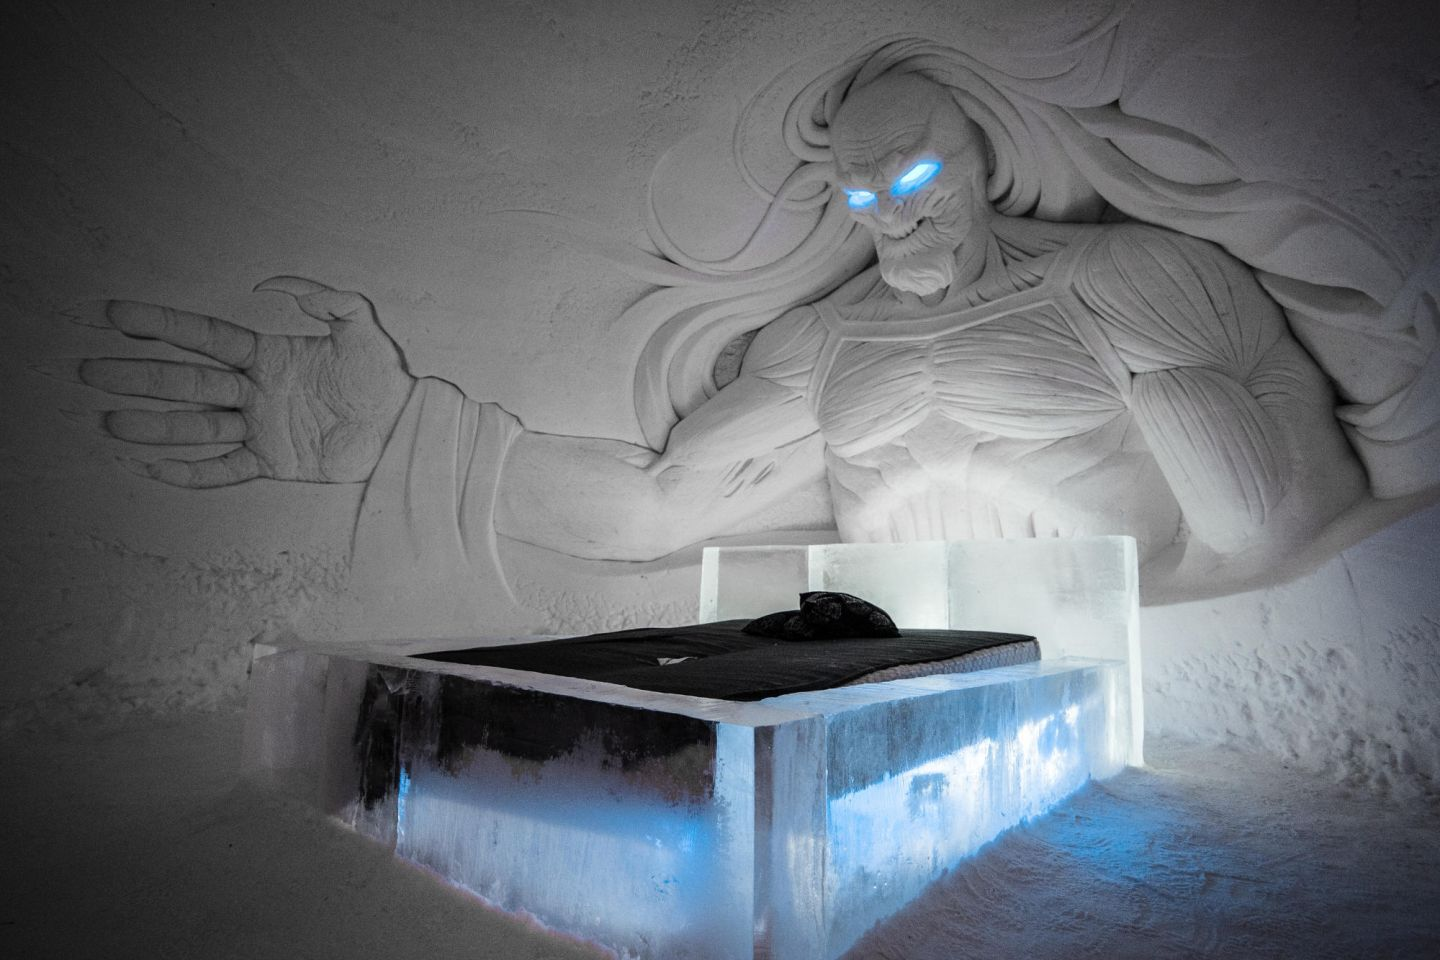 Game of thrones snow village hotel bed